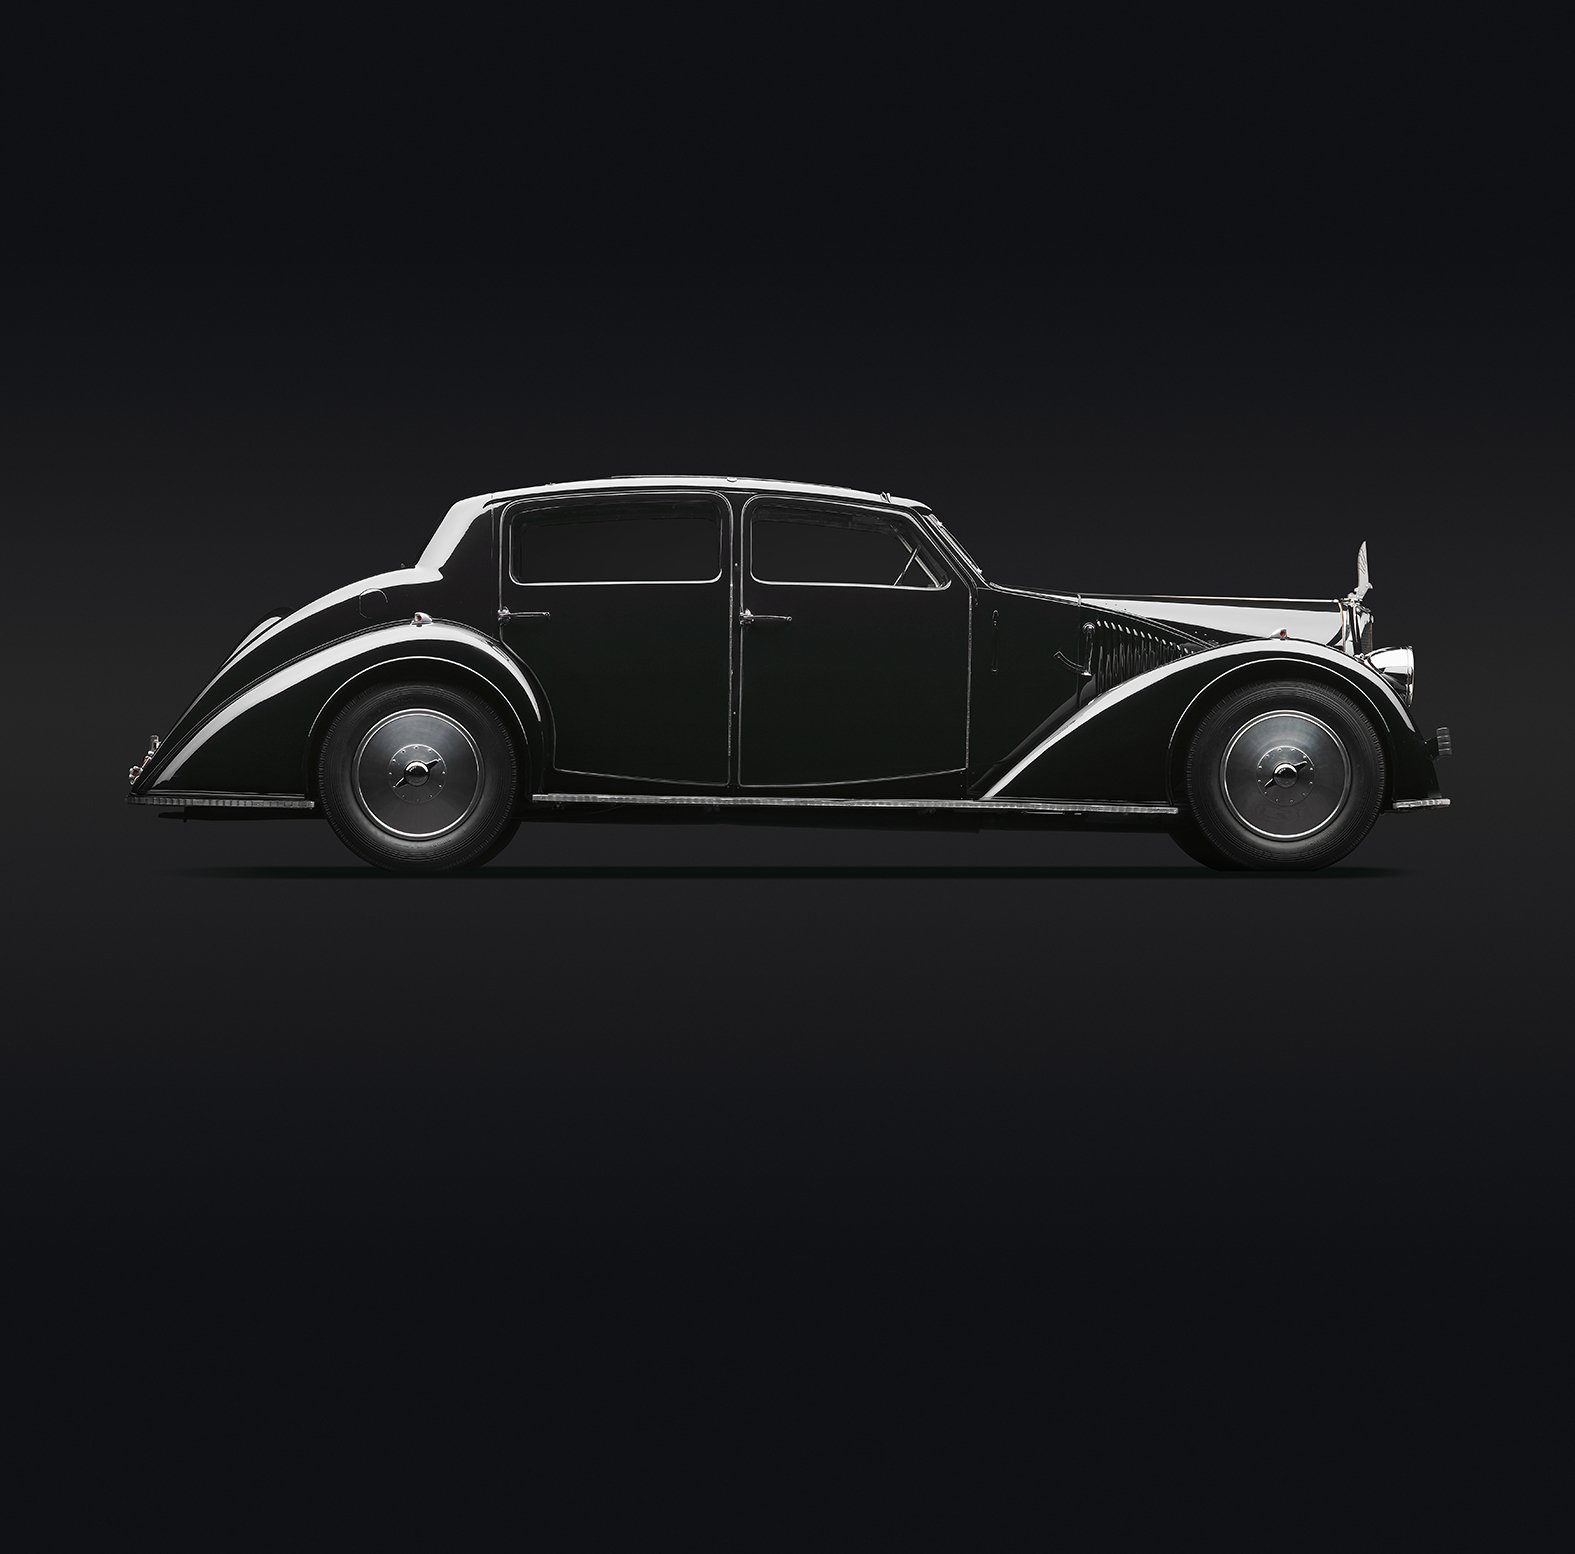 1936 Voisin C28 Clairière, Collection of Peter and Merle Mullin  Photo 6 of 15 in Examining the Architecture of the Art Deco Automobile